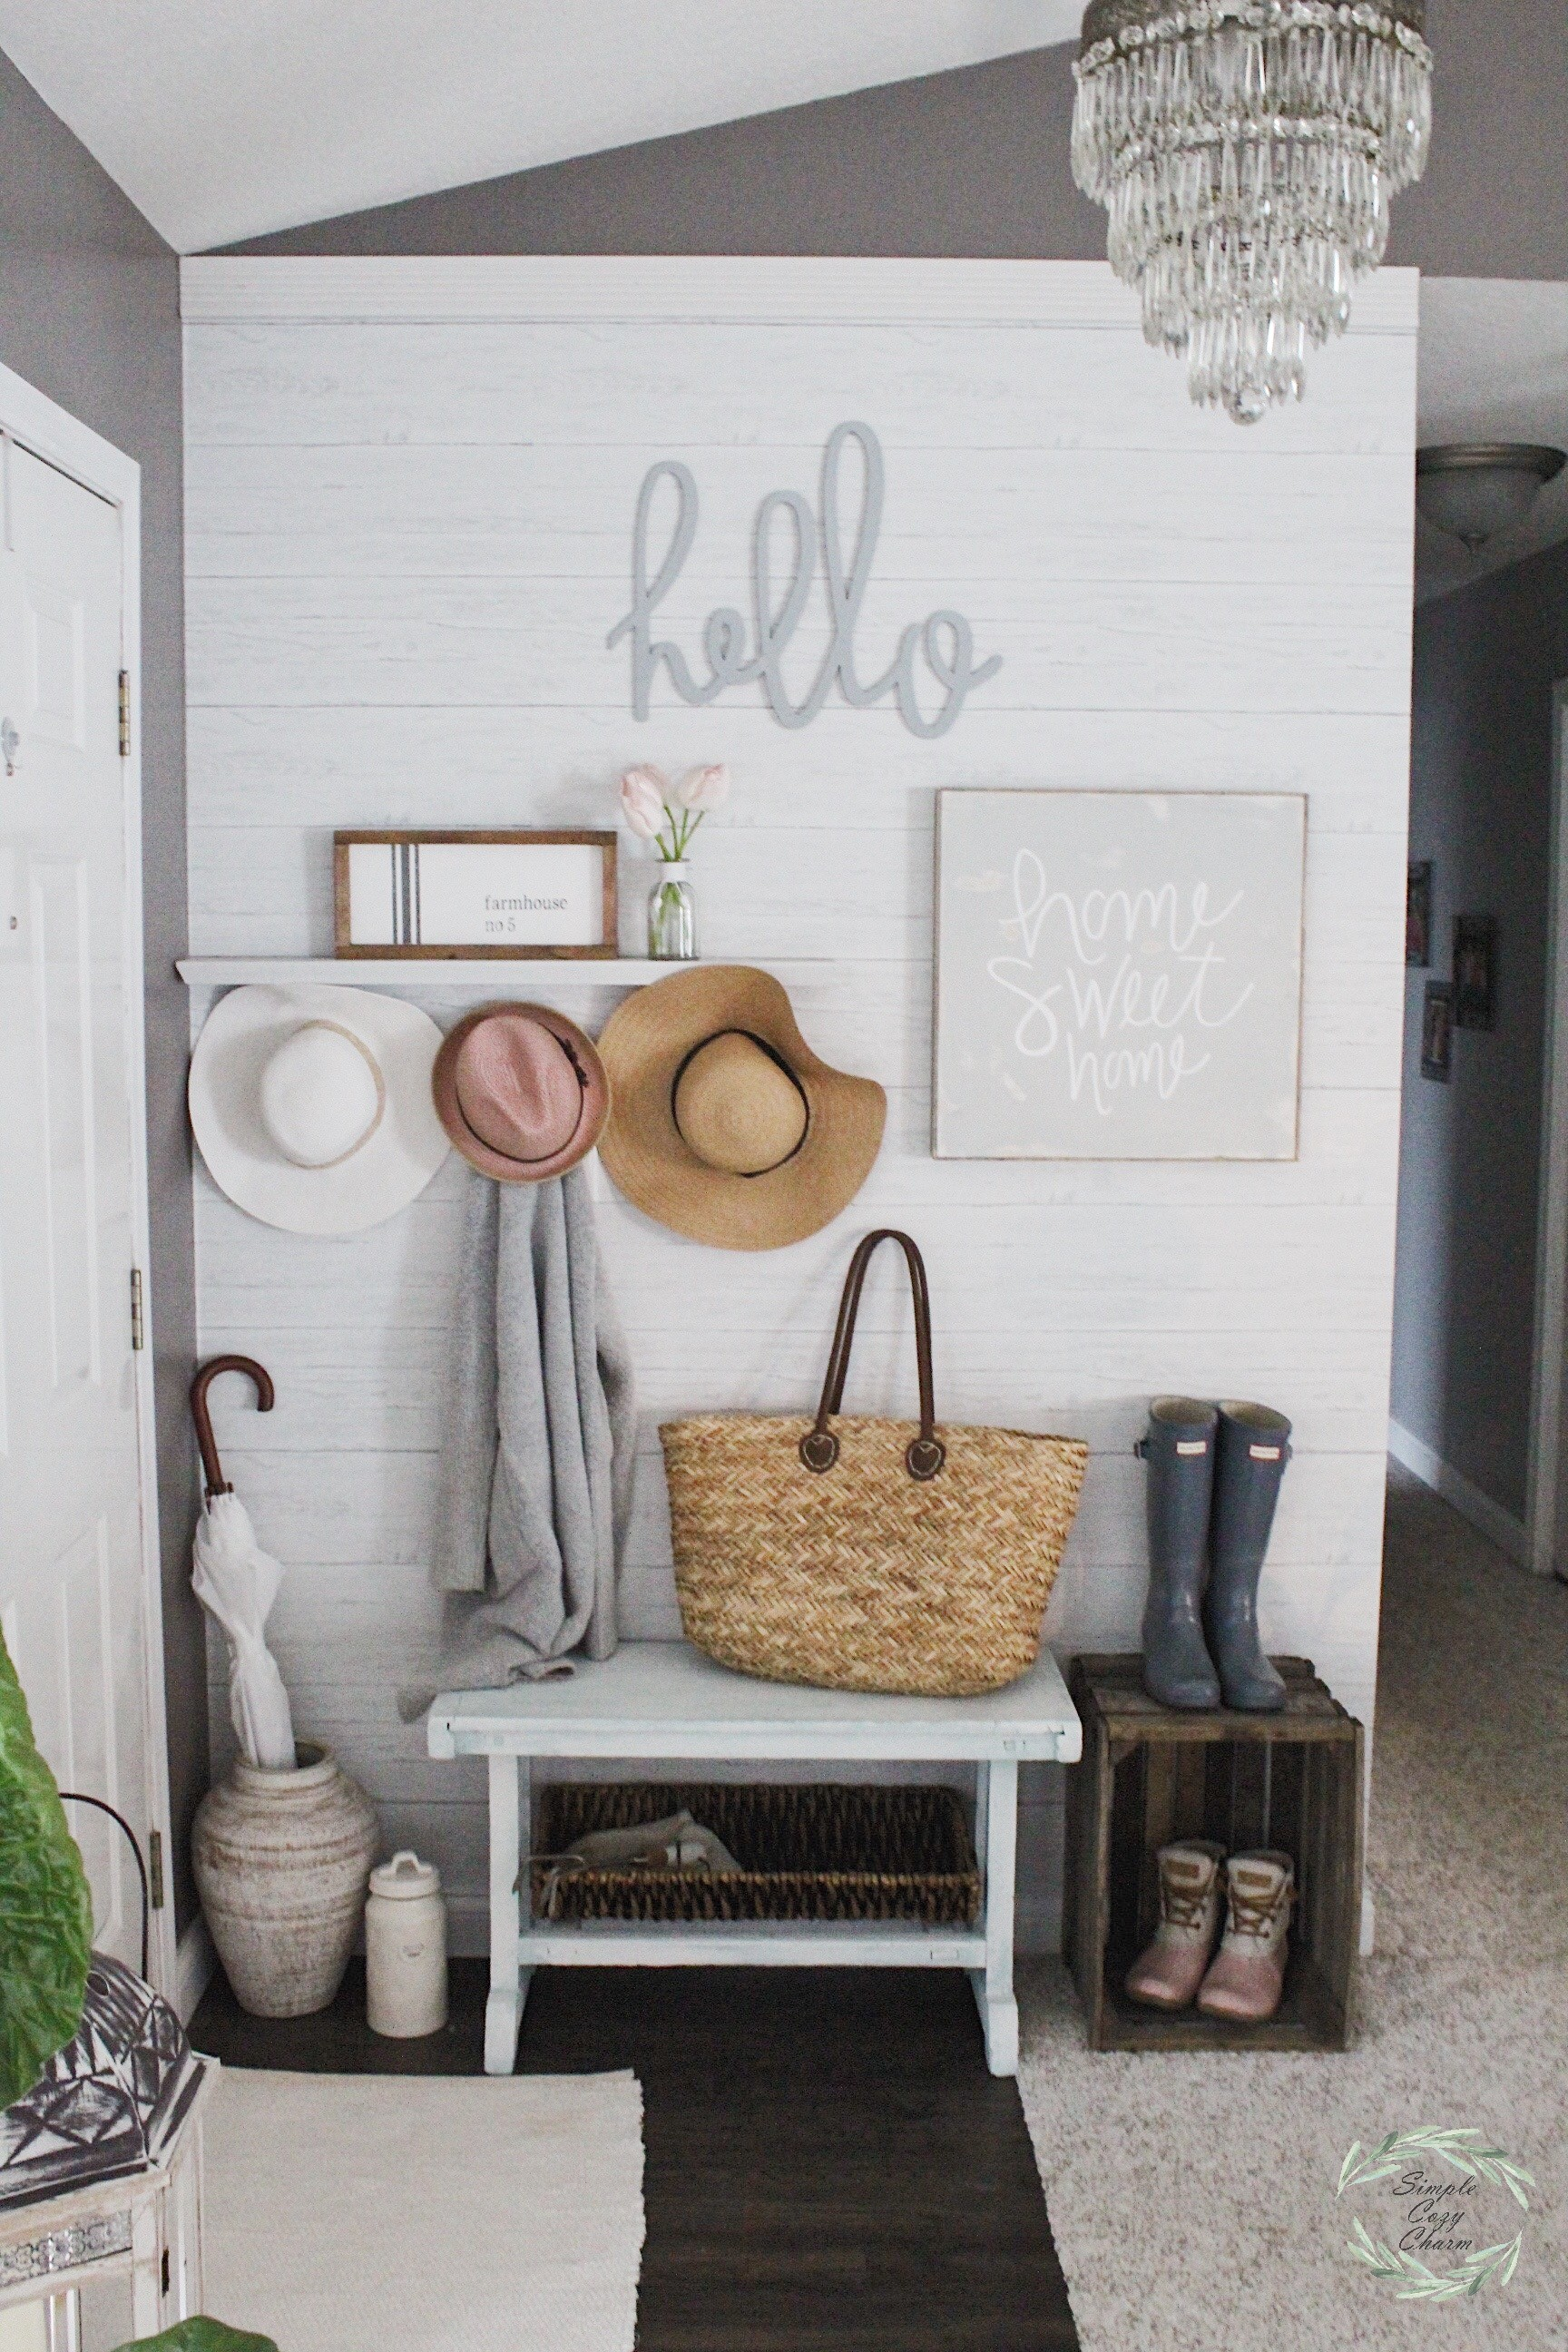 Farmhouse Bedroom Decor Final Bathroom Update 3 Small Entryway 2018 Spring  Refresh ...